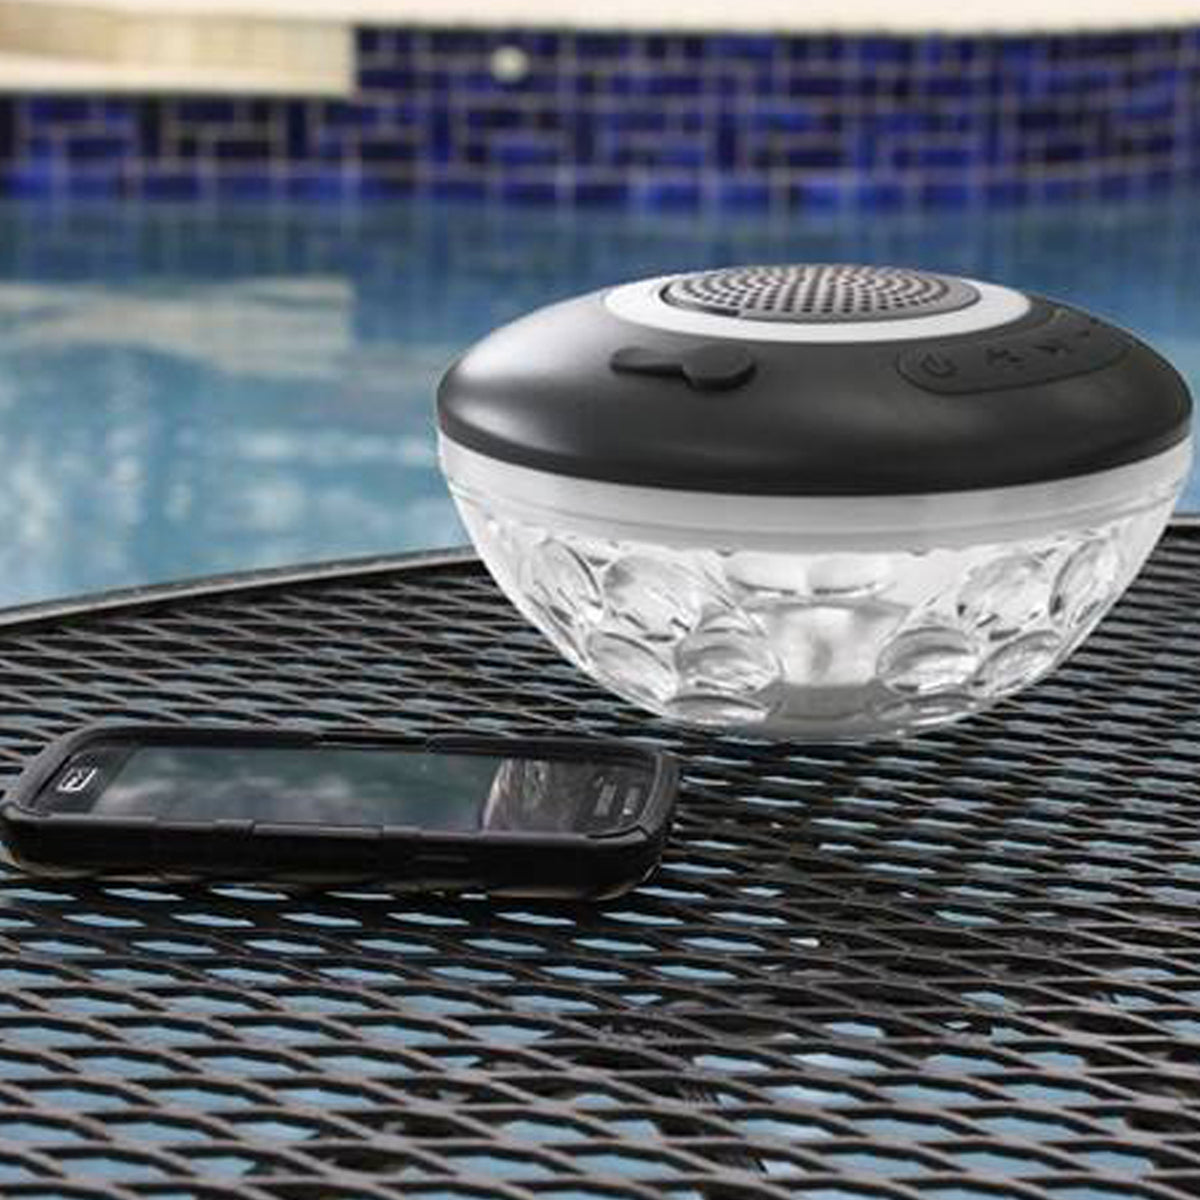 wireless speaker by the pool v2